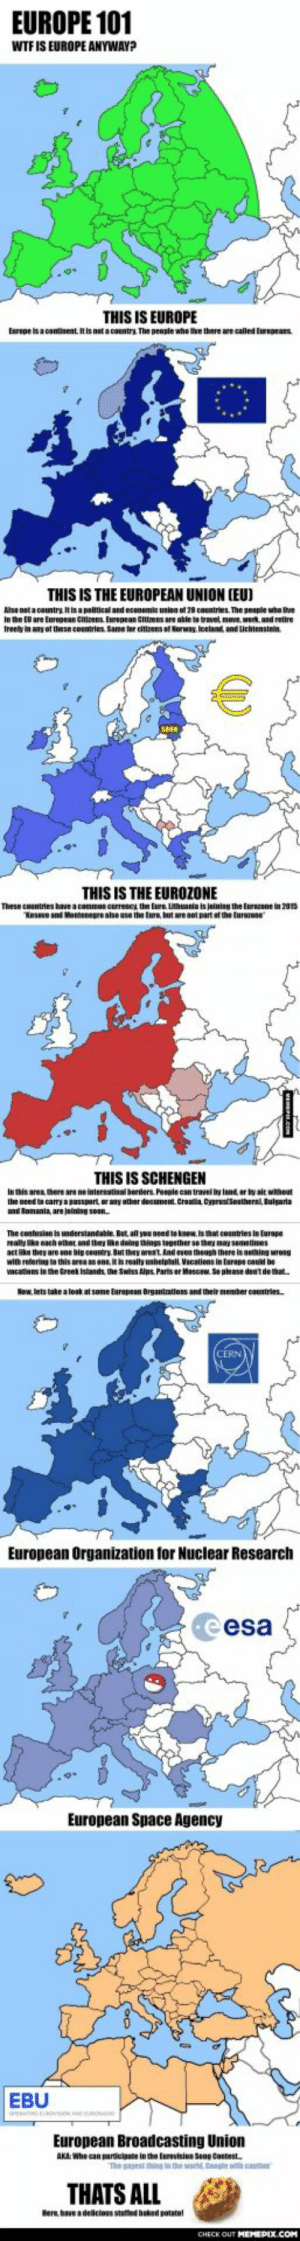 Europe explained for non-Europeans!omg-humor.tumblr.com: EUROPE 101  WTF IS EUROPE ANYWAYP  THIS IS EUROPE  Europe is a continent. It is net a country The people whe he there are called Eurepeans  THIS IS THE EUROPEAN UNION (EU)  Alse net a country tisa political and econoemie union of 28 countries. The people uho live  In the El are European Citizens. Eurepean Citizens are able to travel move, wert. and rettre  freely in any of these countries Same ler citirens ef Norway, loeland, and Uchtenstein.  THIS IS THE EUROZONE  These countries have a common currescy, the lure. uthania is jeinin the Eurecone in 2013  Kesevo and Montenegre alse use the Eure, but are not part ef the Eurzone  THIS IS SCHENGEN  In this area here are ne internatinal berders. Peeple can travel y land er by ait withost  the need to carrya passport or any other document. Croatia CyprustSouthernl, Bulgaria  and Bomania, are jJeining seon  Na nderstandahle. Bat  Haly ike each olet nd they mE dong thinss tigether se thej hay semedmes  act like they are ene big ceuntry But they areat. And even theugh there is nething wrong  with reterins to this area as ene, it is really unhelphull Vacations in tarope could be  vacations in the treek Islands the Swiss Alps. Pariser Moscow. Se please dentde that  The contusian is  yo neen ta kew. is that coentries in Eurage  Now, lets take a loak at some Eurapean Brantzations and their menher cauntries  European Organization for Nuclear Research  esa  European Space Agency  EBU  European Broadcasting Union  AKA: Whe can participate in the Eurovtsion Seng Contest  The sayest thing in the werld. Cooe th cauter  THATS ALL  Here, have a delicions stuffed baked potatol  CHECK OUT MEMEPIX.COM Europe explained for non-Europeans!omg-humor.tumblr.com